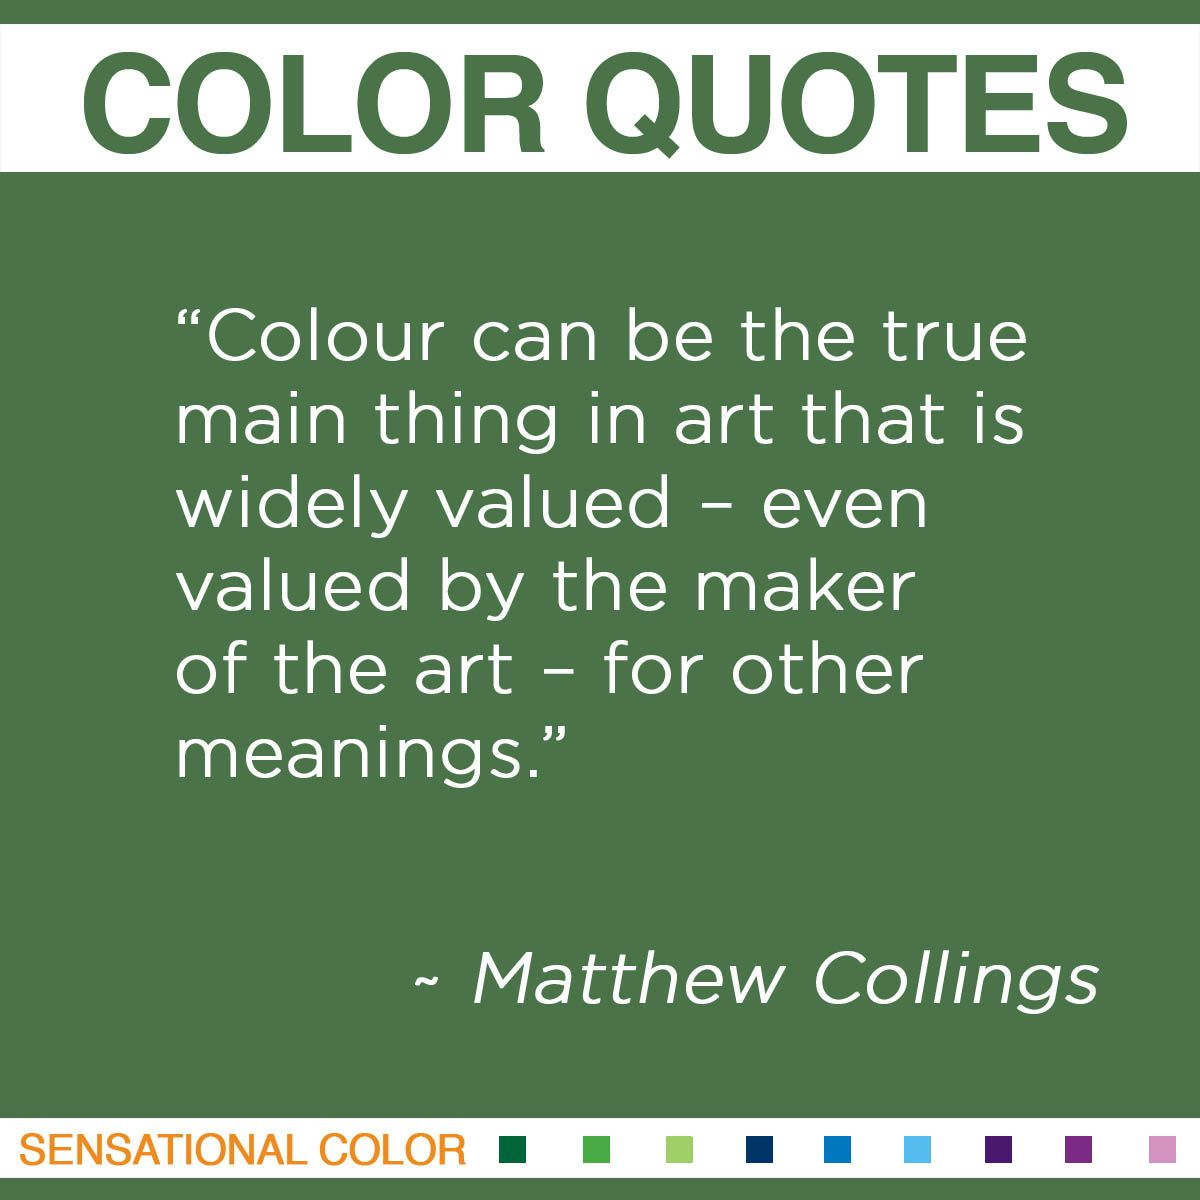 """Colour can be the true main thing in art that is widely valued – even valued by the maker of the art – for other meanings."" - Matthew Collings"